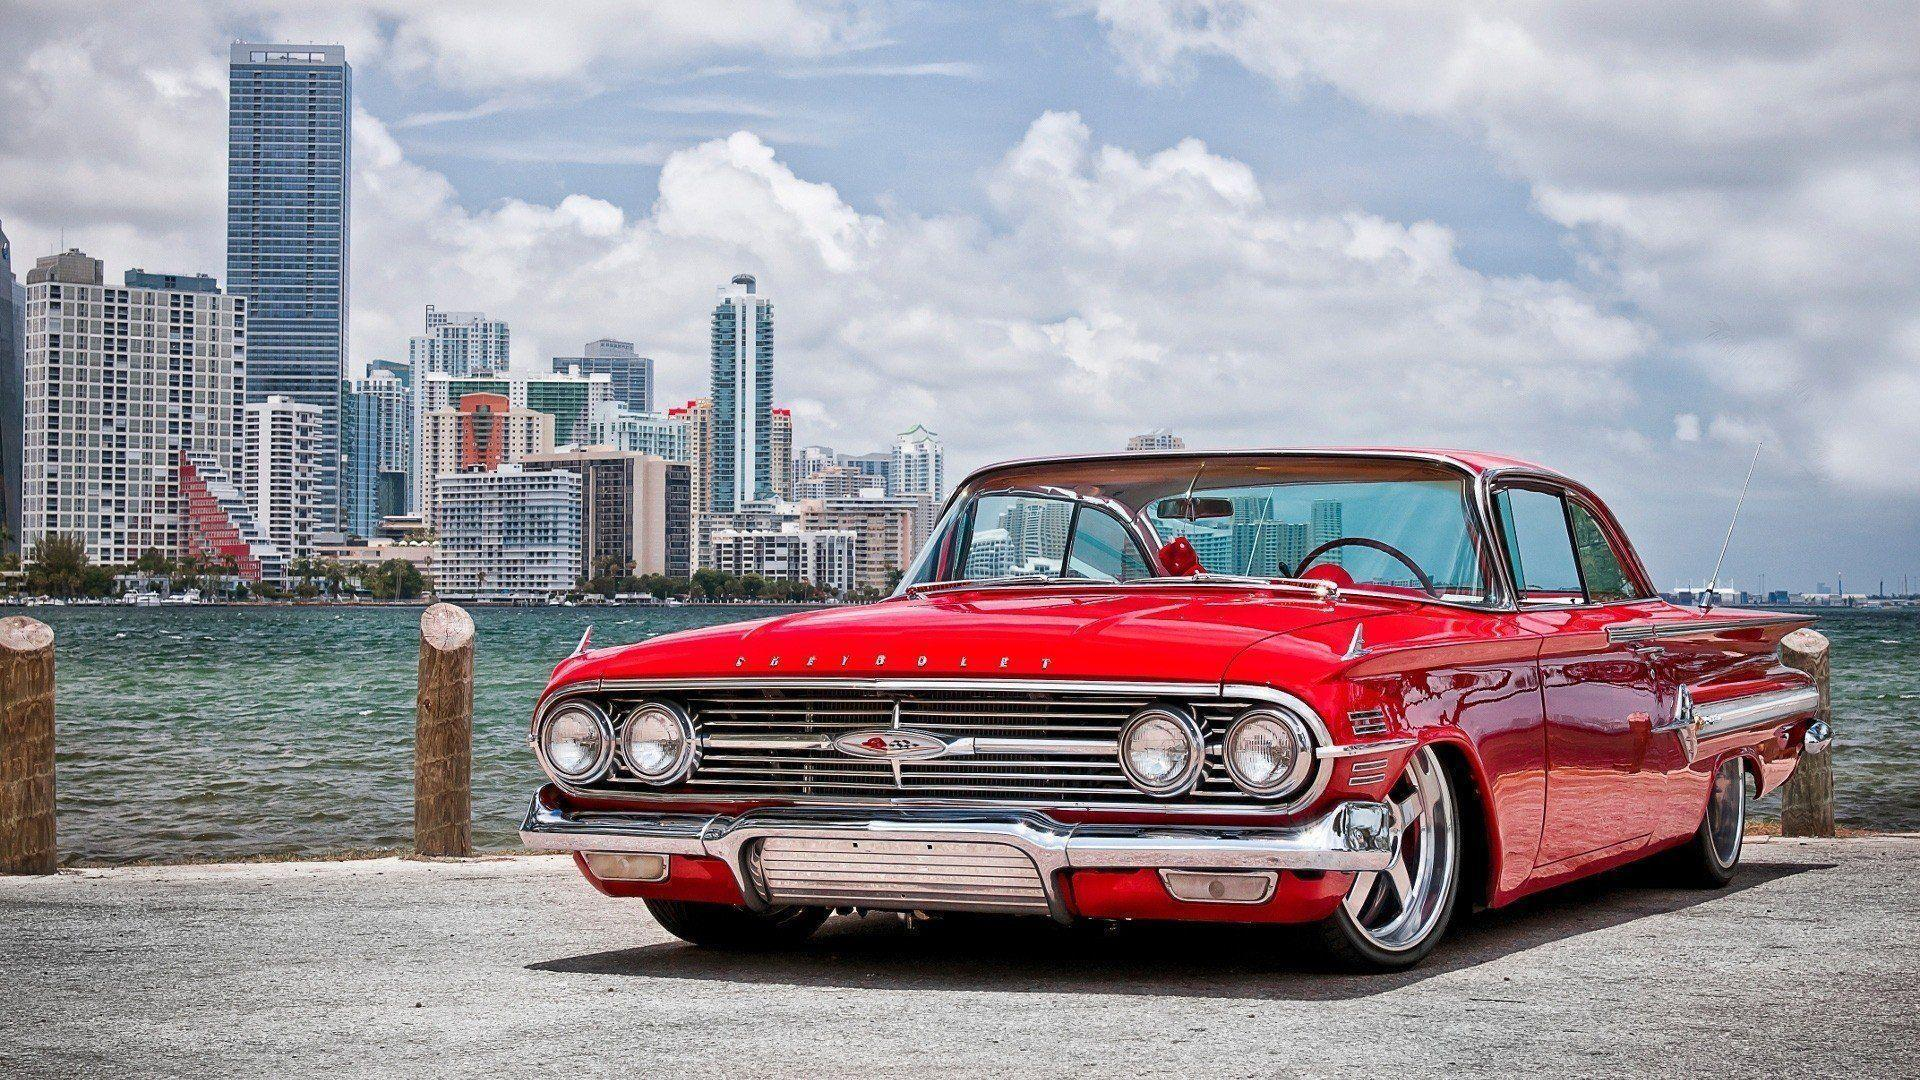 1963 Chevy Impala Wallpaper: Chevrolet Impala Wallpapers